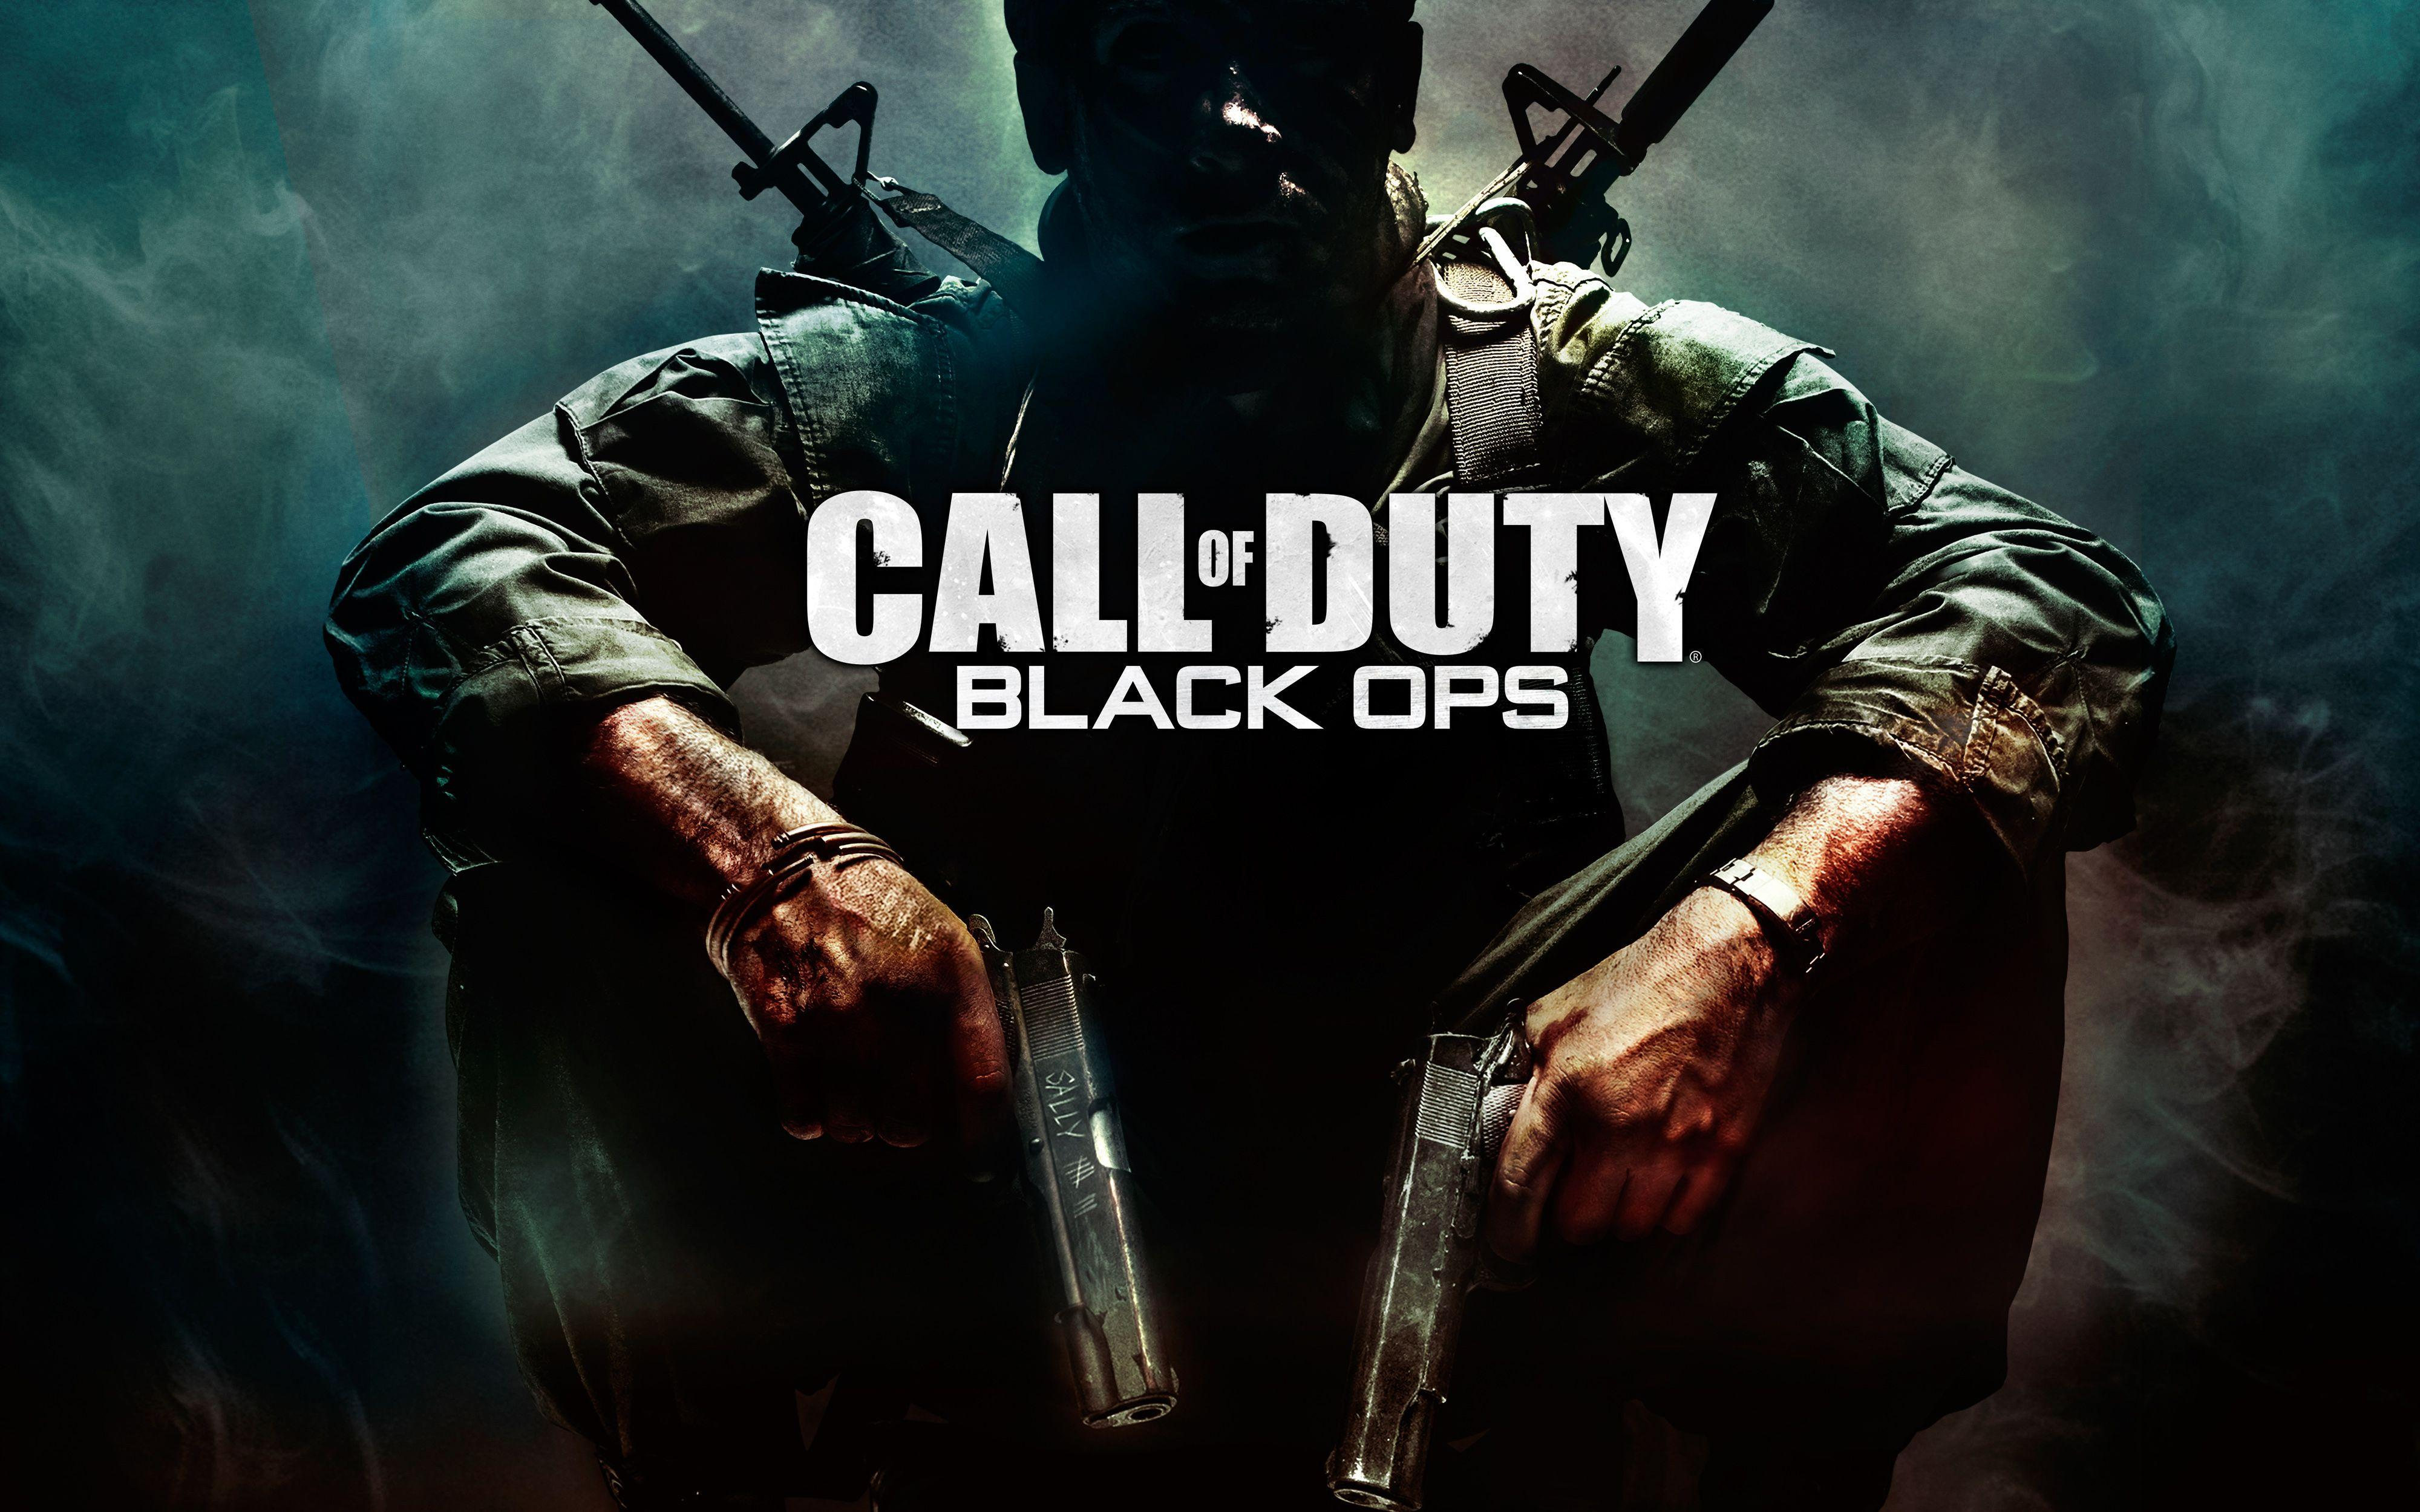 Call of duty black ops 2 - wallpaper.